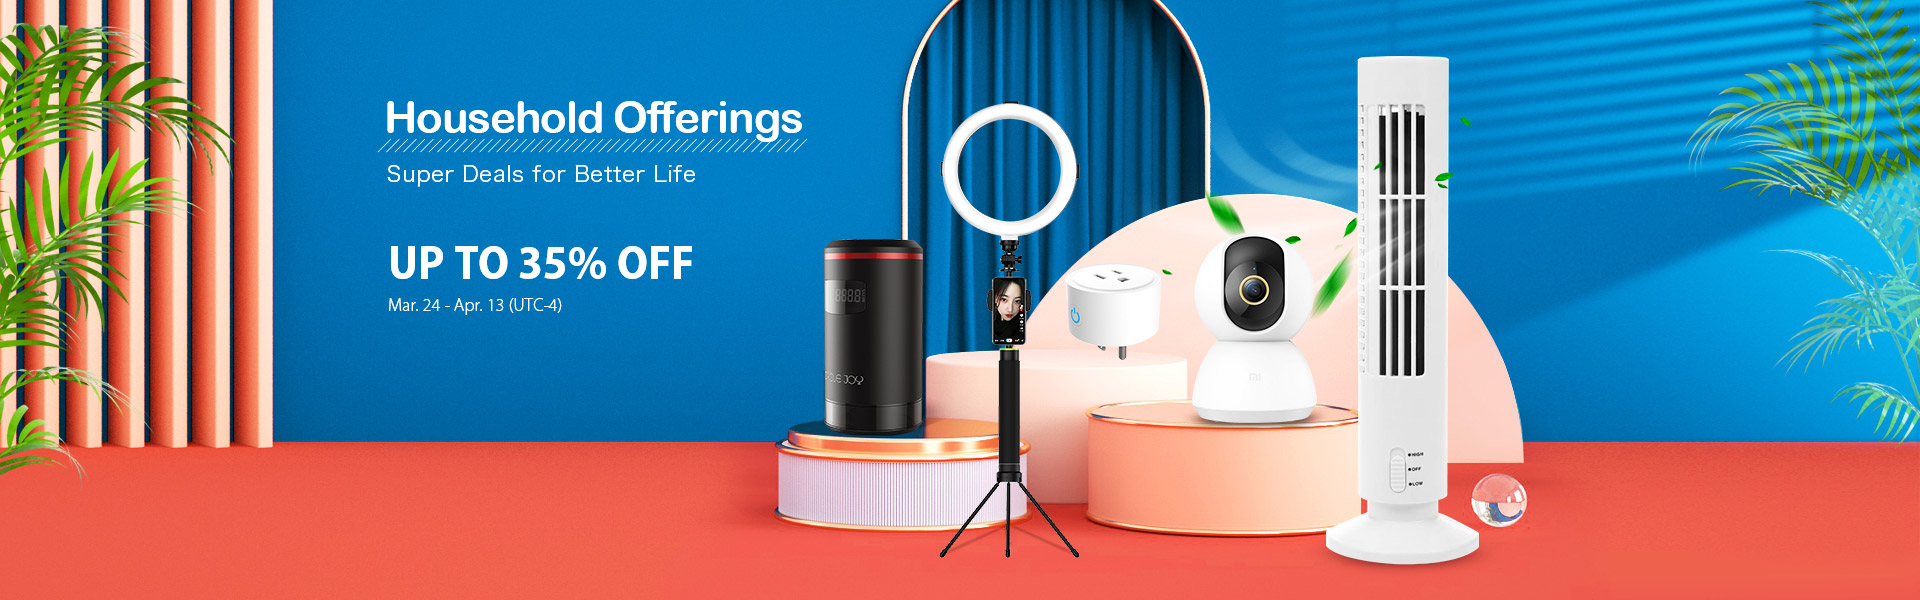 Household Offerings Up to 35% off-TVC-mall.com